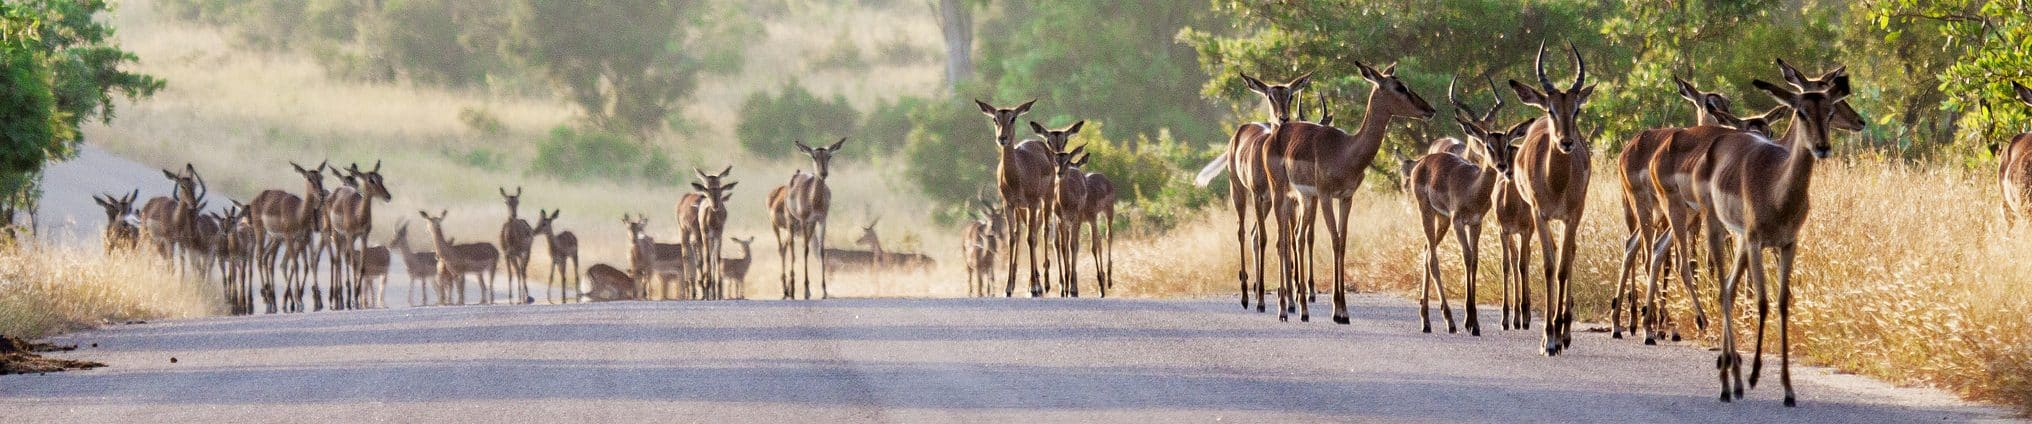 Impala herd on Kruger road, sheldrickfalls